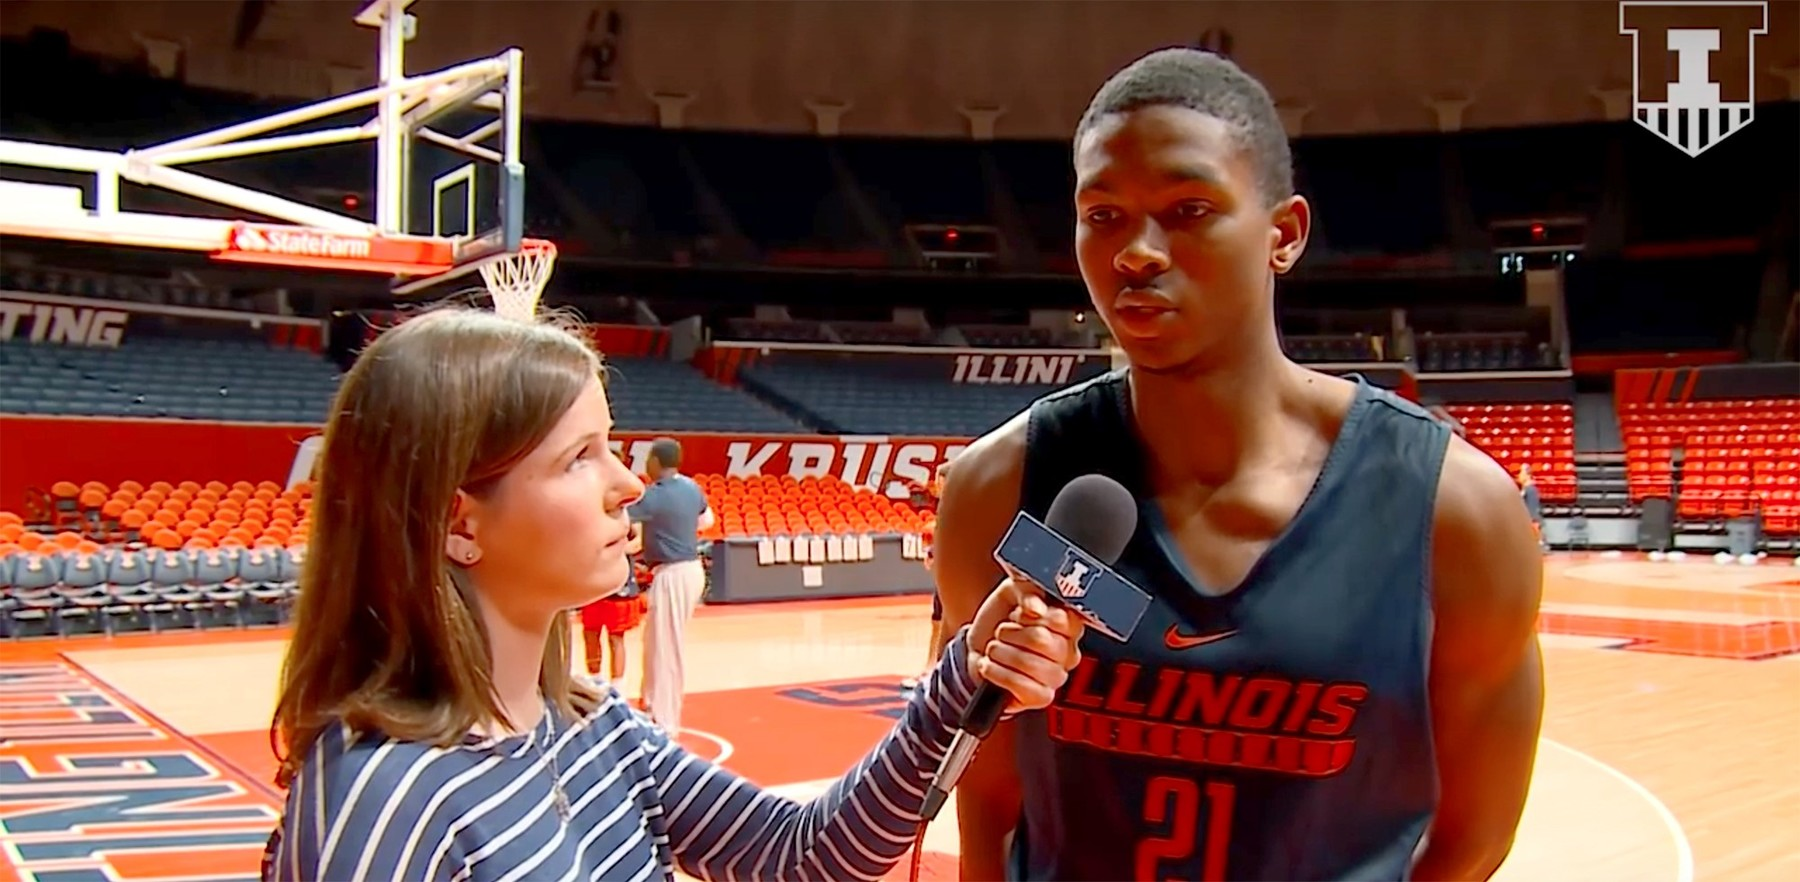 Malcomb Hill being interviewed on court